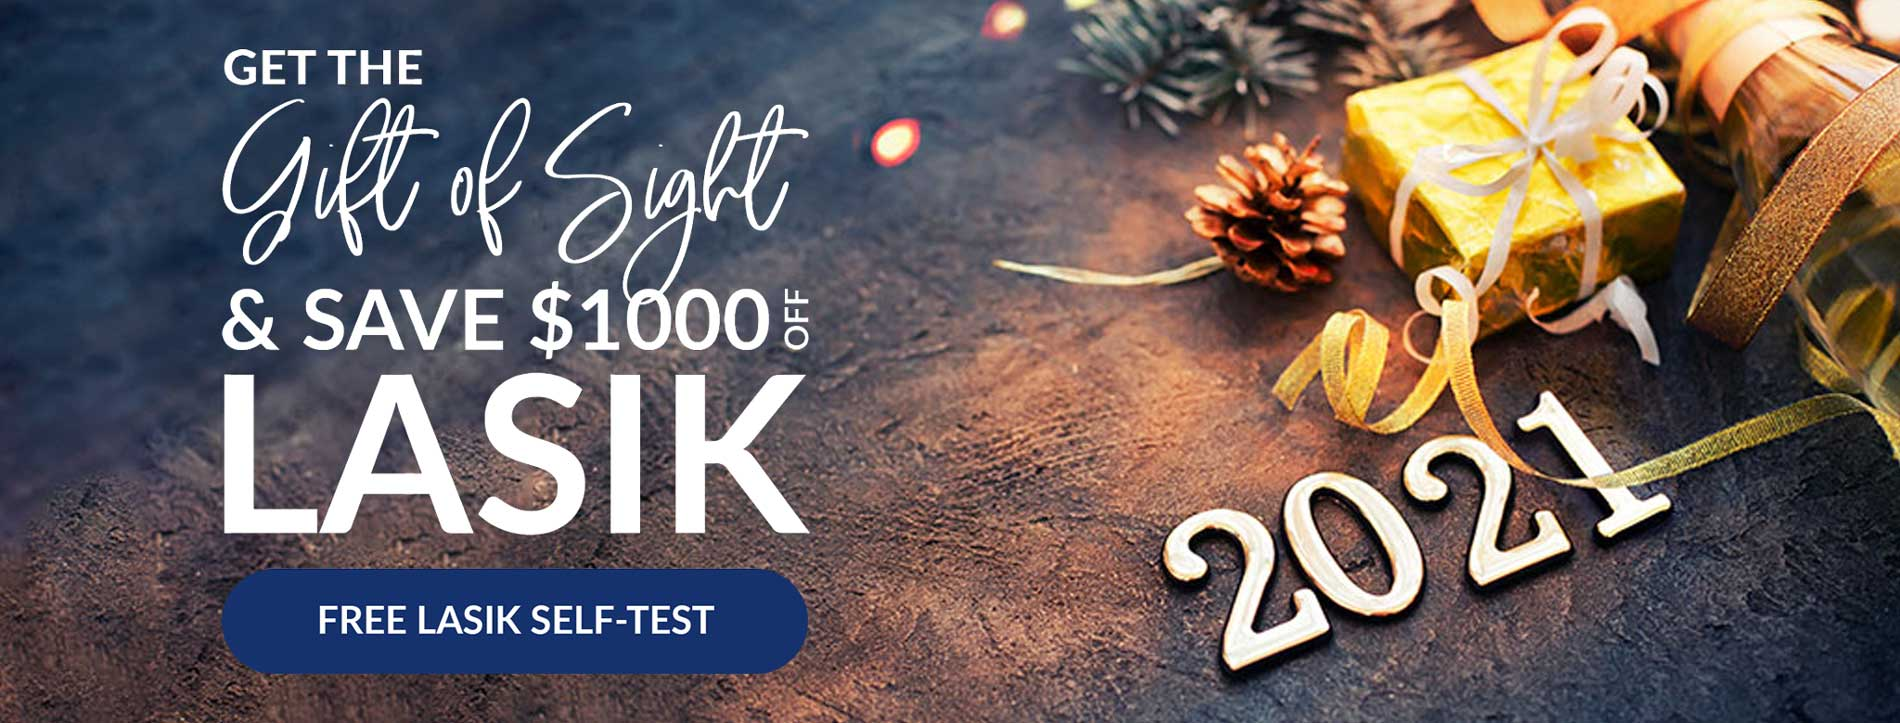 Get the gift of sight & save 1000 off LASIK